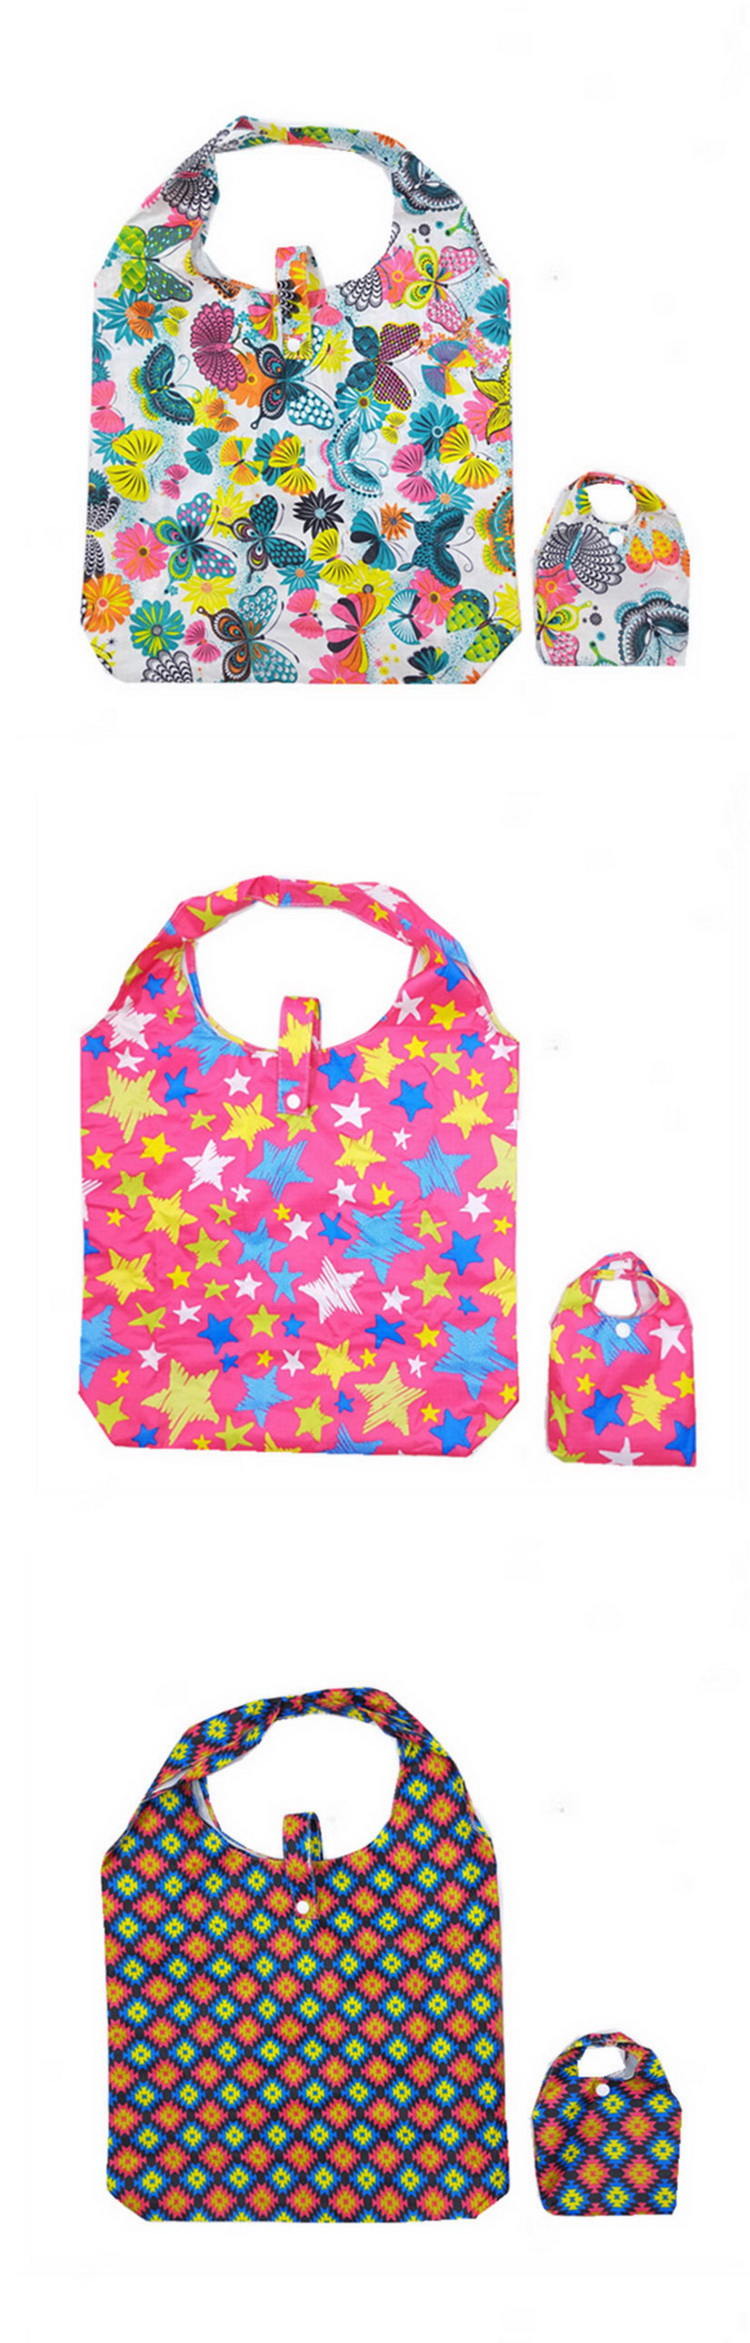 Portable recycled polyester nylon reusable foldable shopping bag